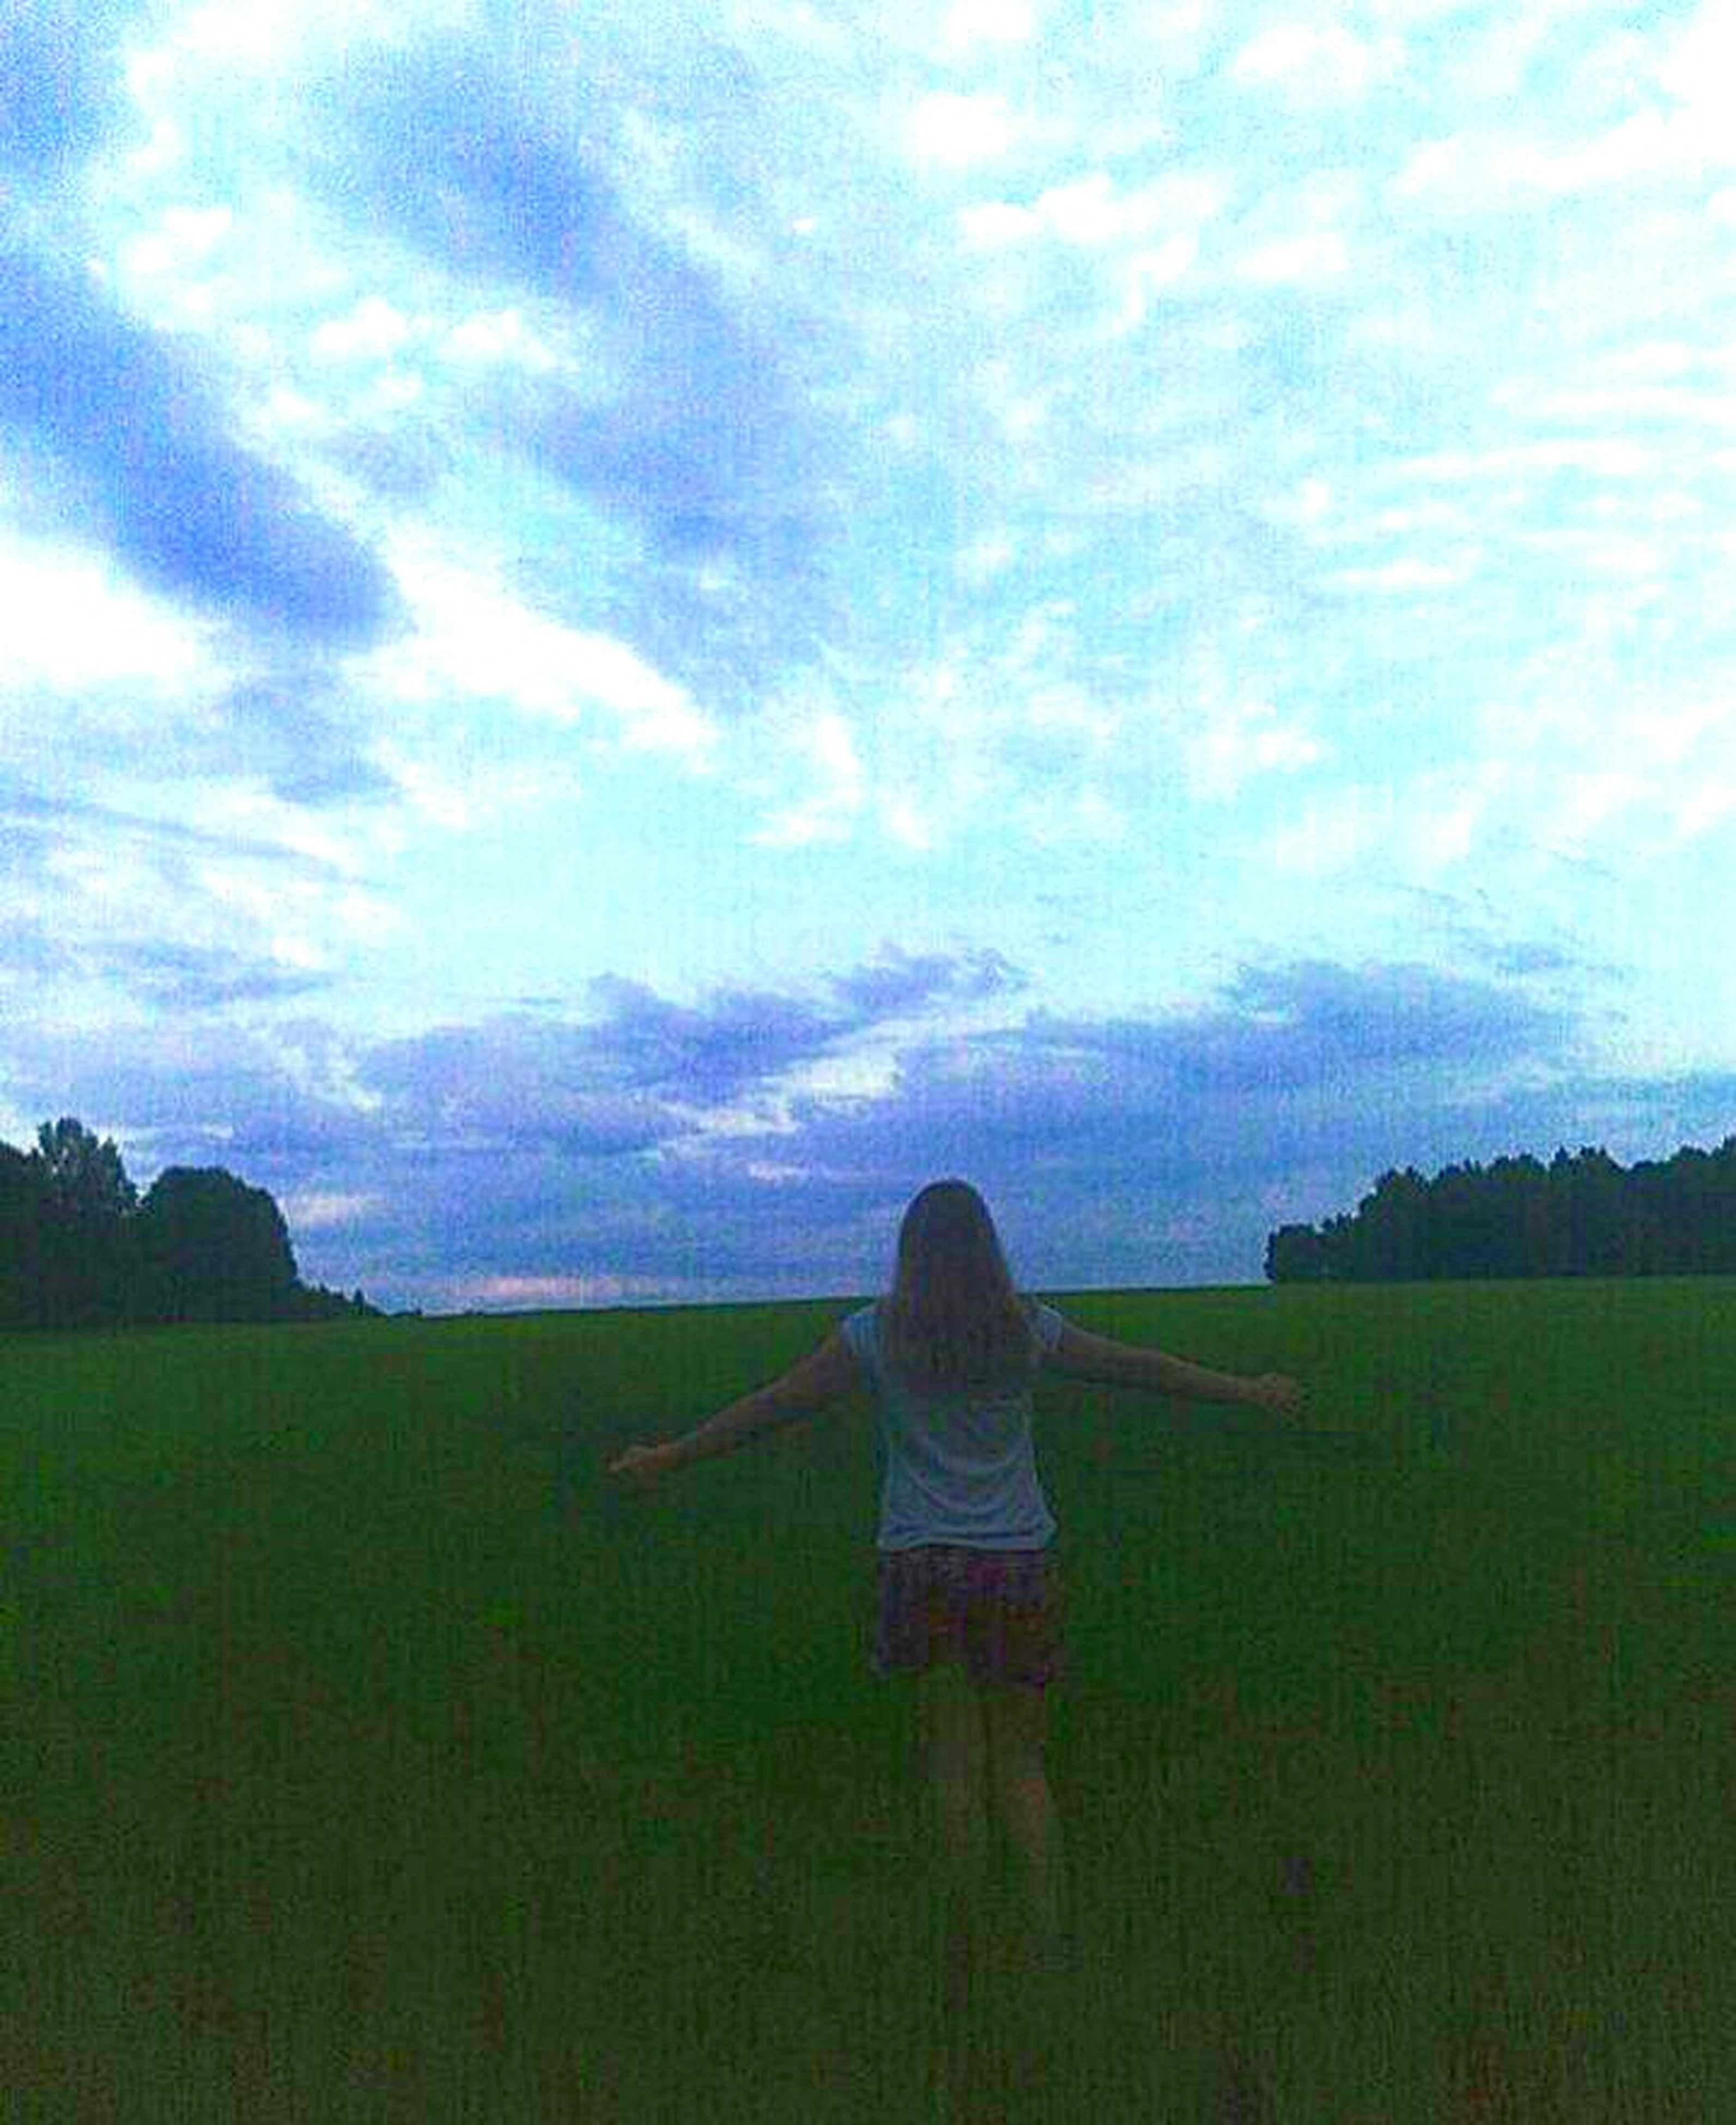 rear view, sky, real people, nature, one person, tranquility, cloud - sky, field, landscape, leisure activity, tranquil scene, green color, women, beauty in nature, outdoors, grass, day, people